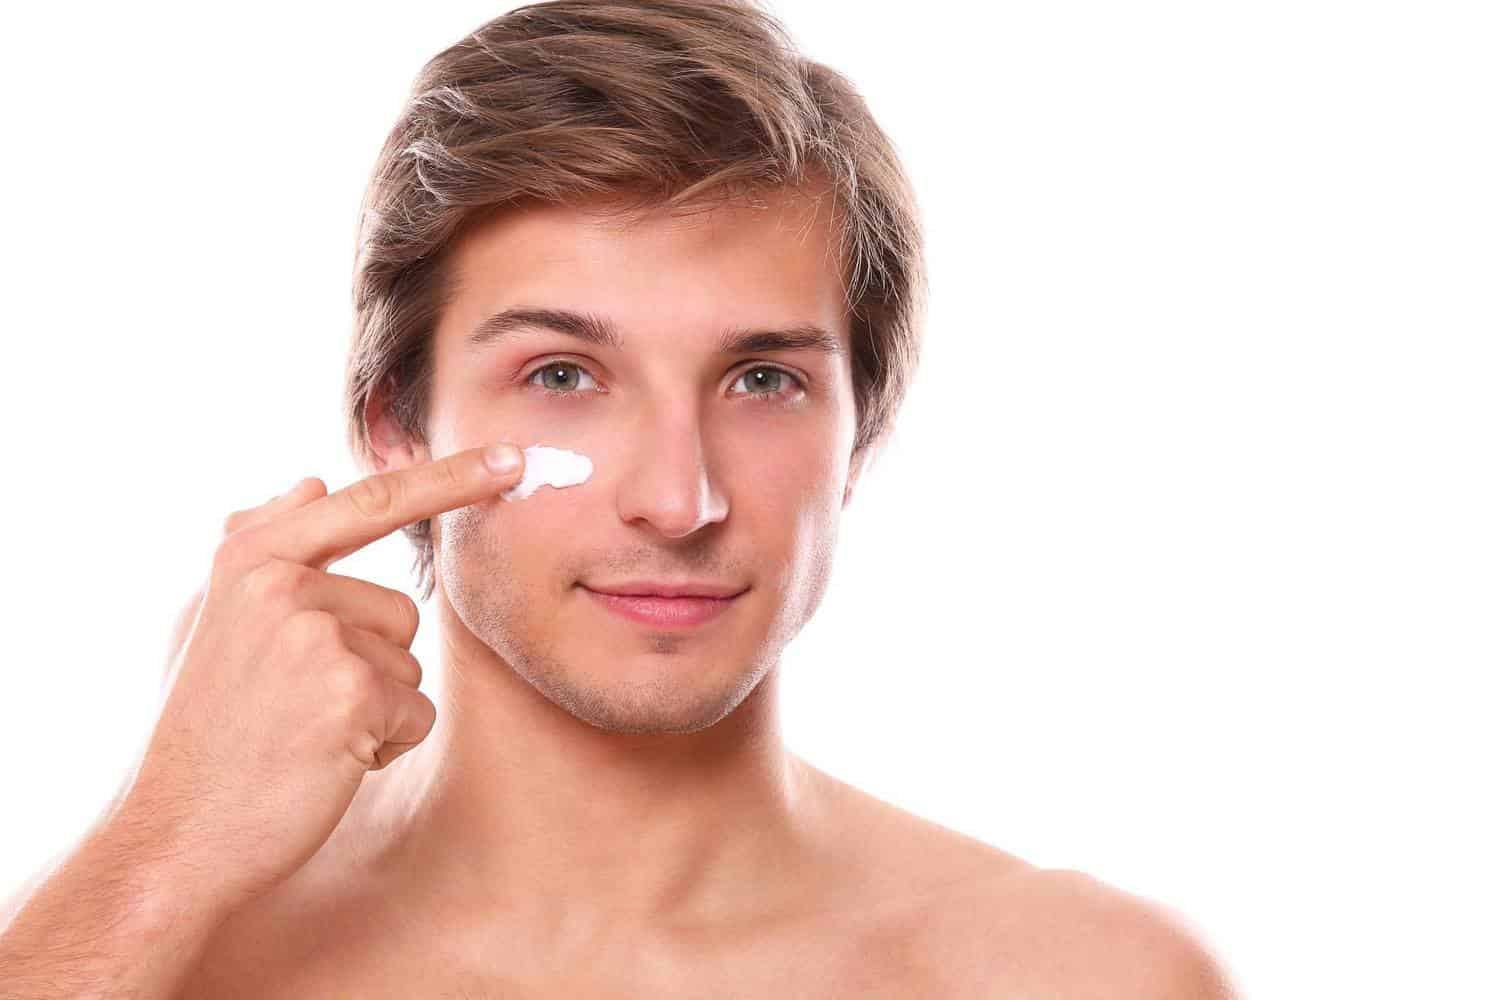 A man putting a line of toothpaste or cream on his face.